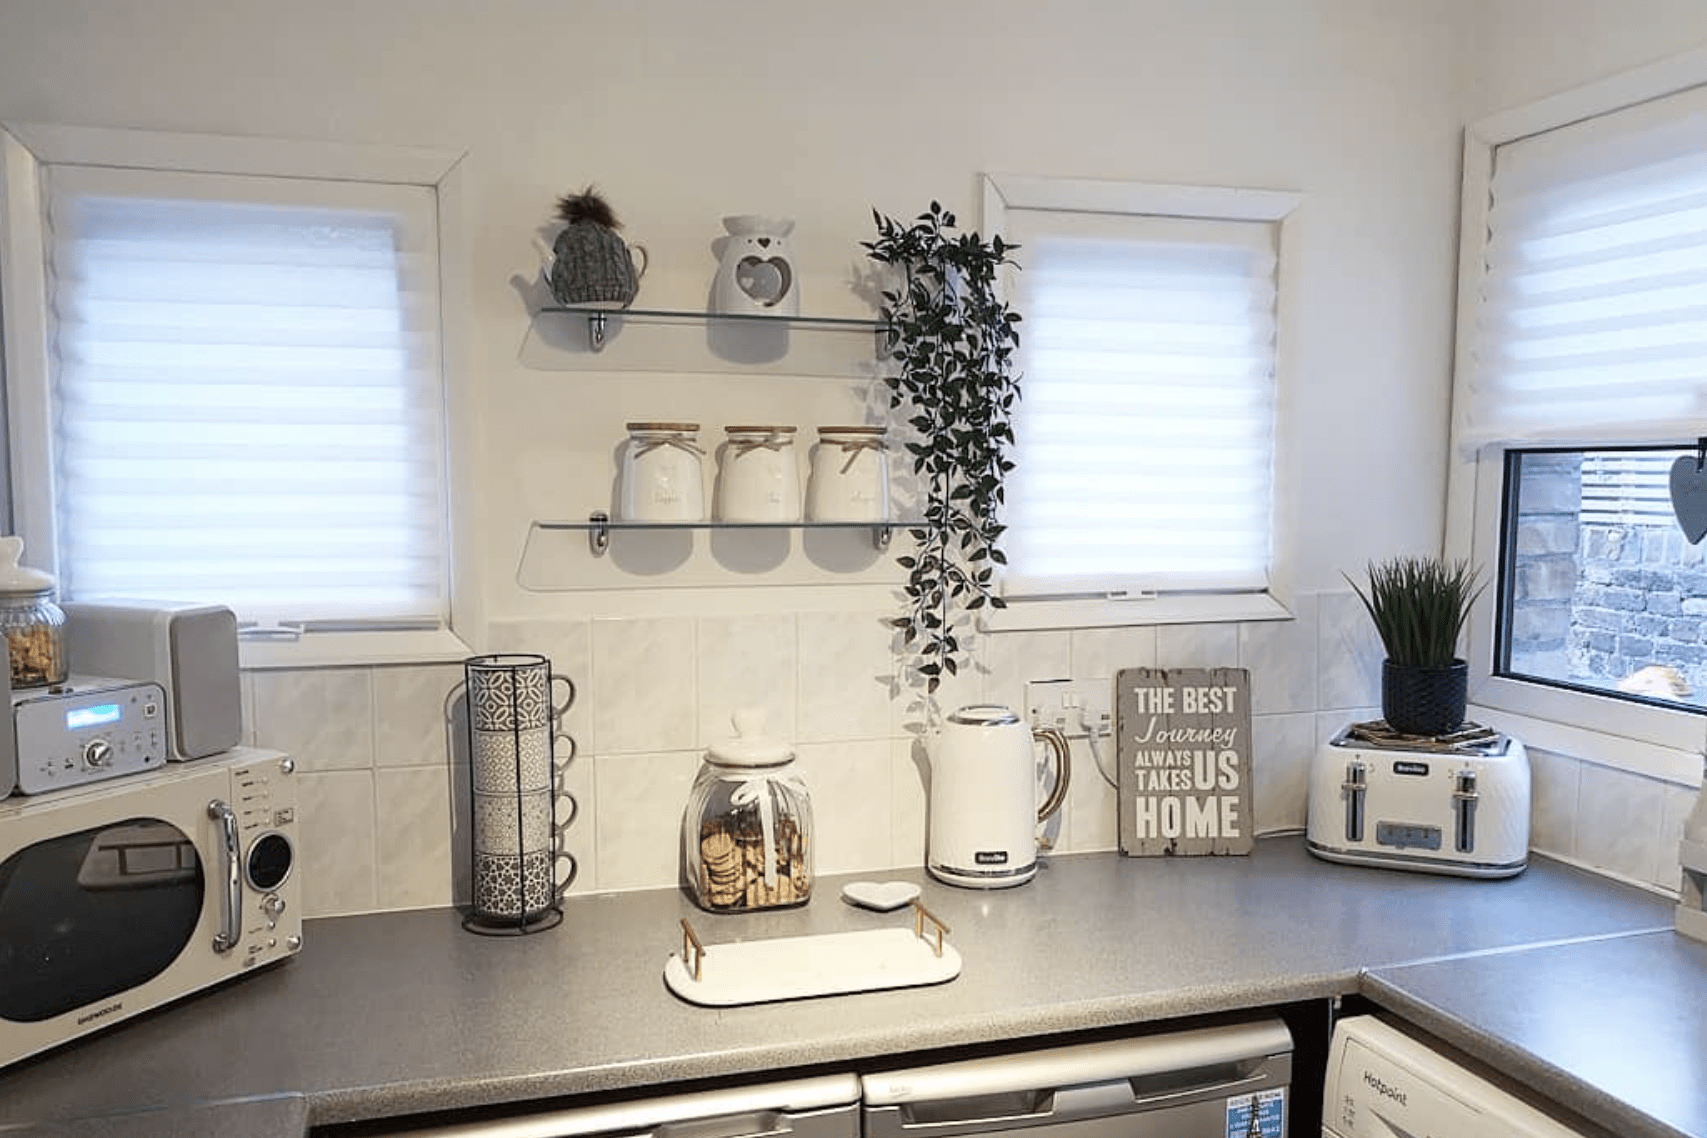 Window Blinds Ikea Ikea Blinds That Cost Just 3 And Can Fit Any Window Spark